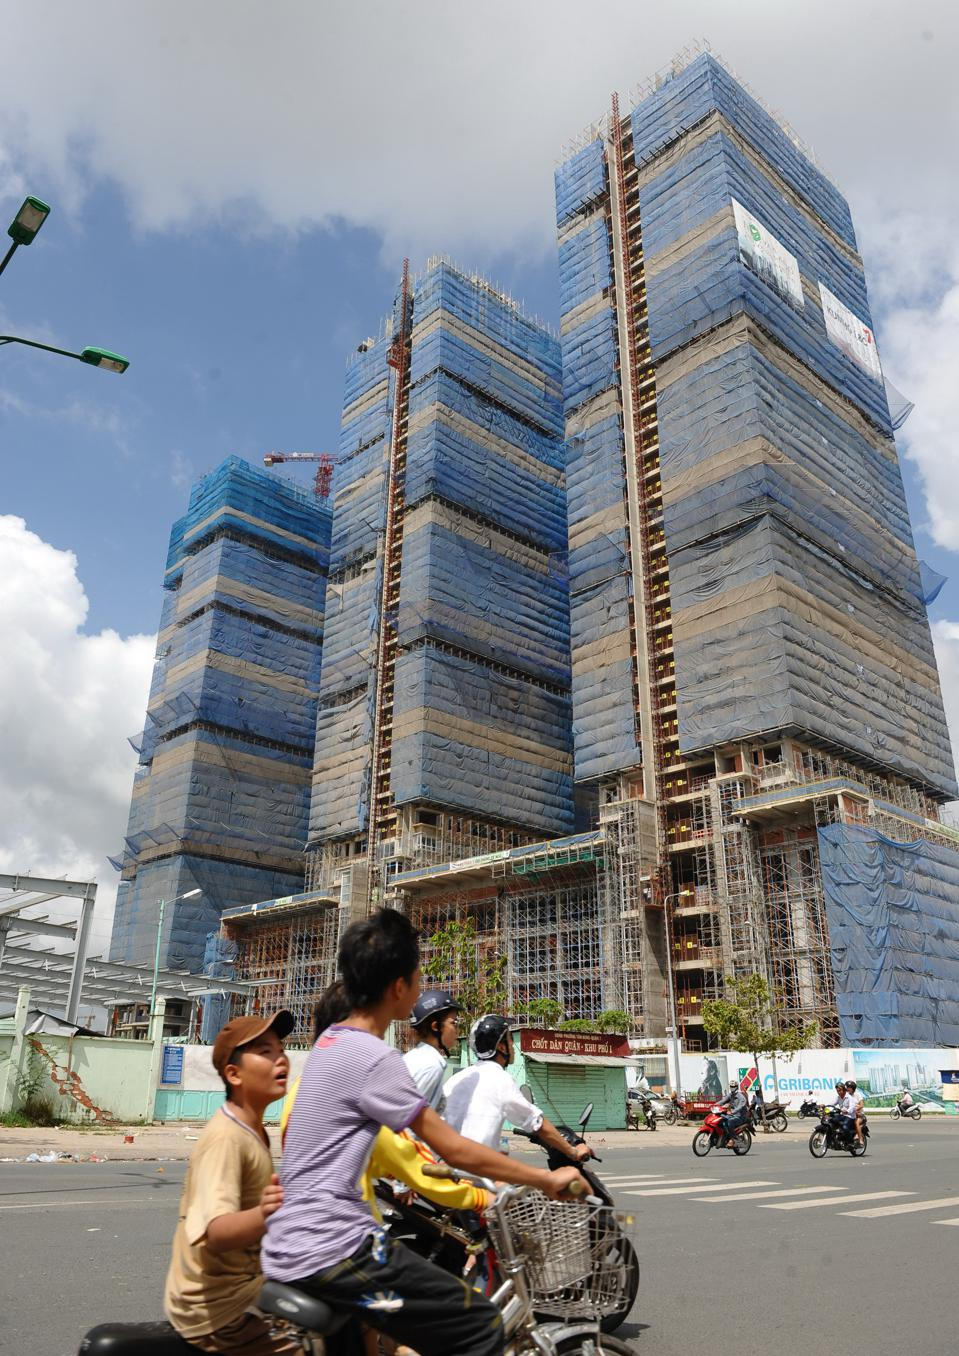 Construction of apartment buildings in Ho Chi Minh City, Vietnam.